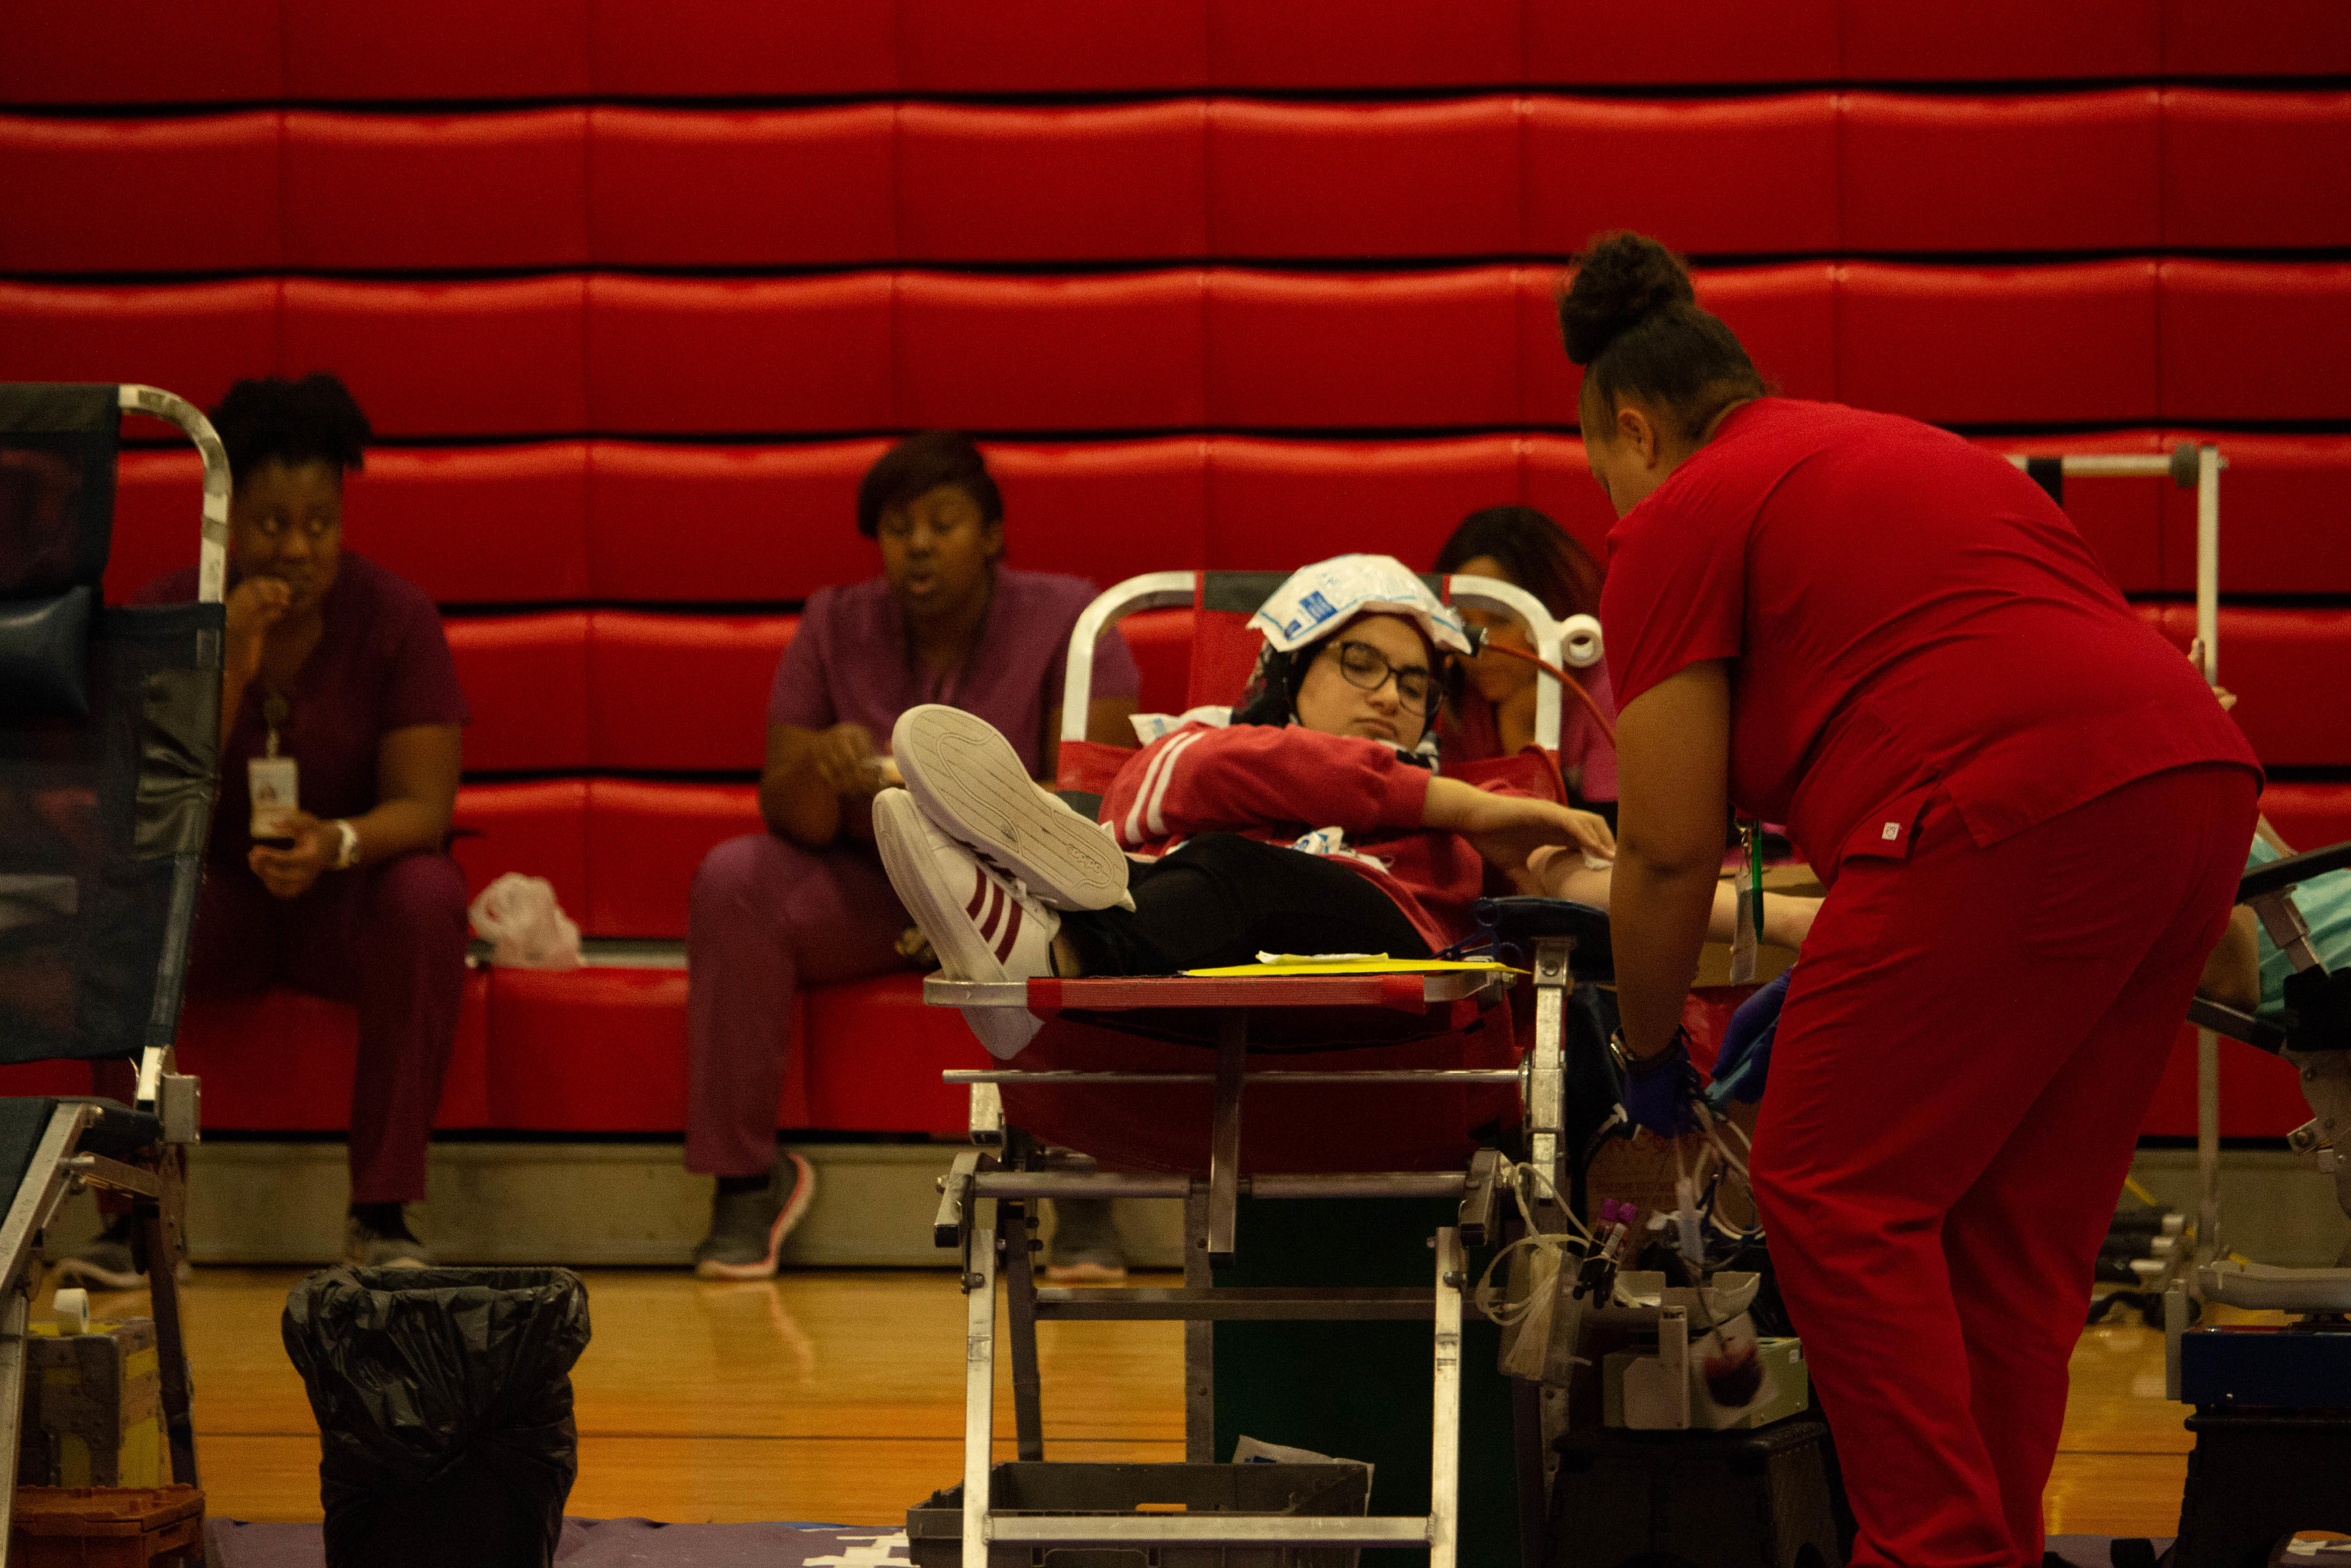 On Oct. 26, Coppell High School junior Saha Saleh gets her blood drawn at the blood drive. The blood drive was held by HOSA and took place all day in the small gym.